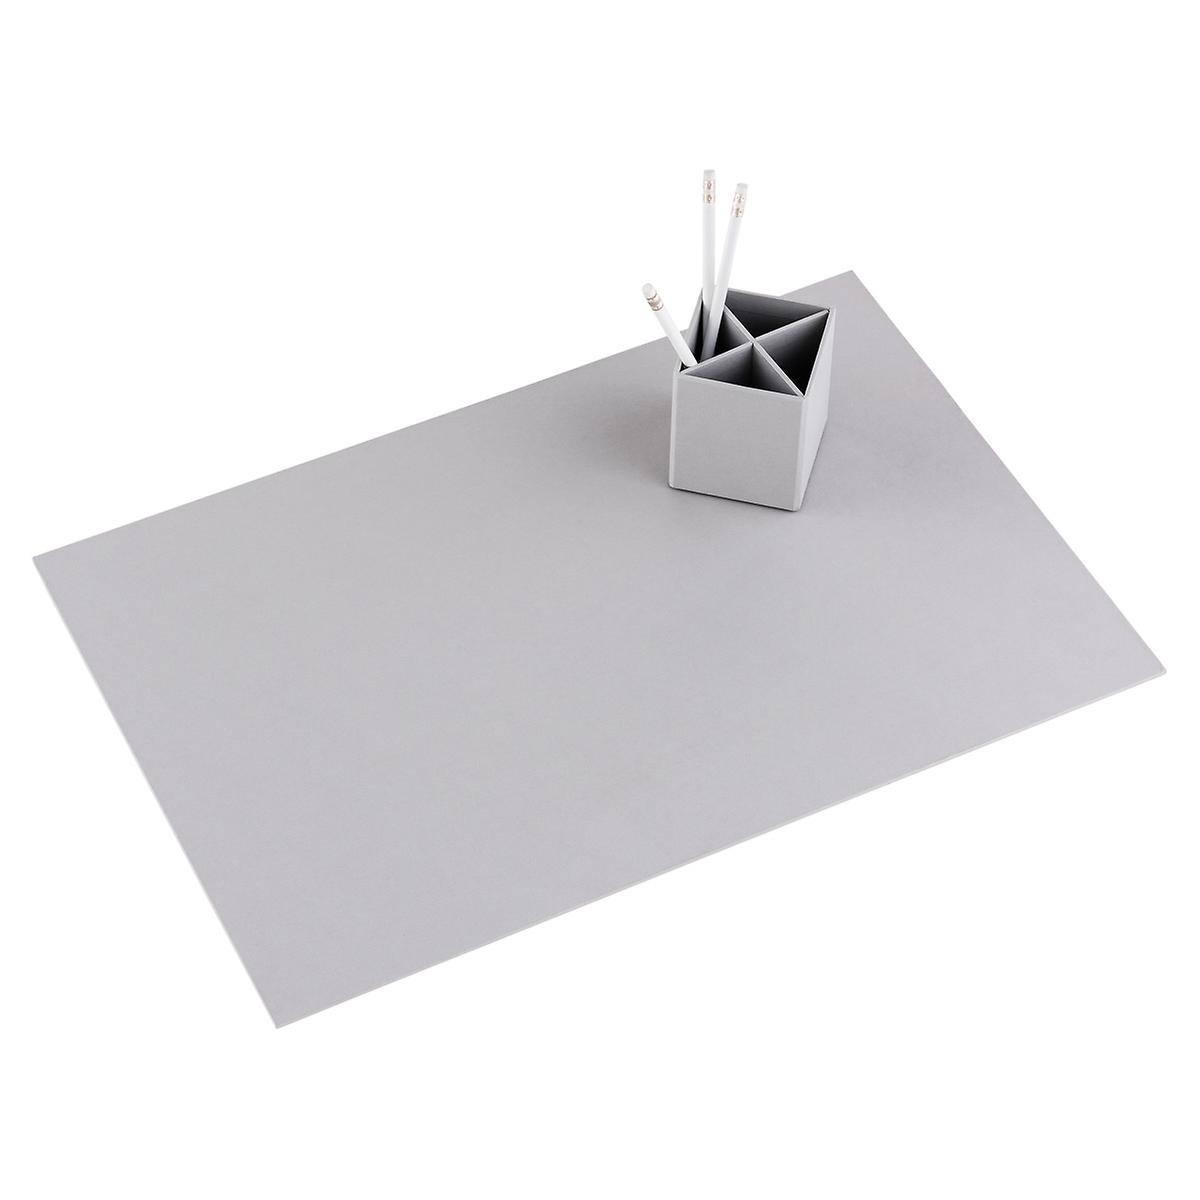 Bigso Light Grey Stockholm Desk Blotter The Container Store - Table pad store